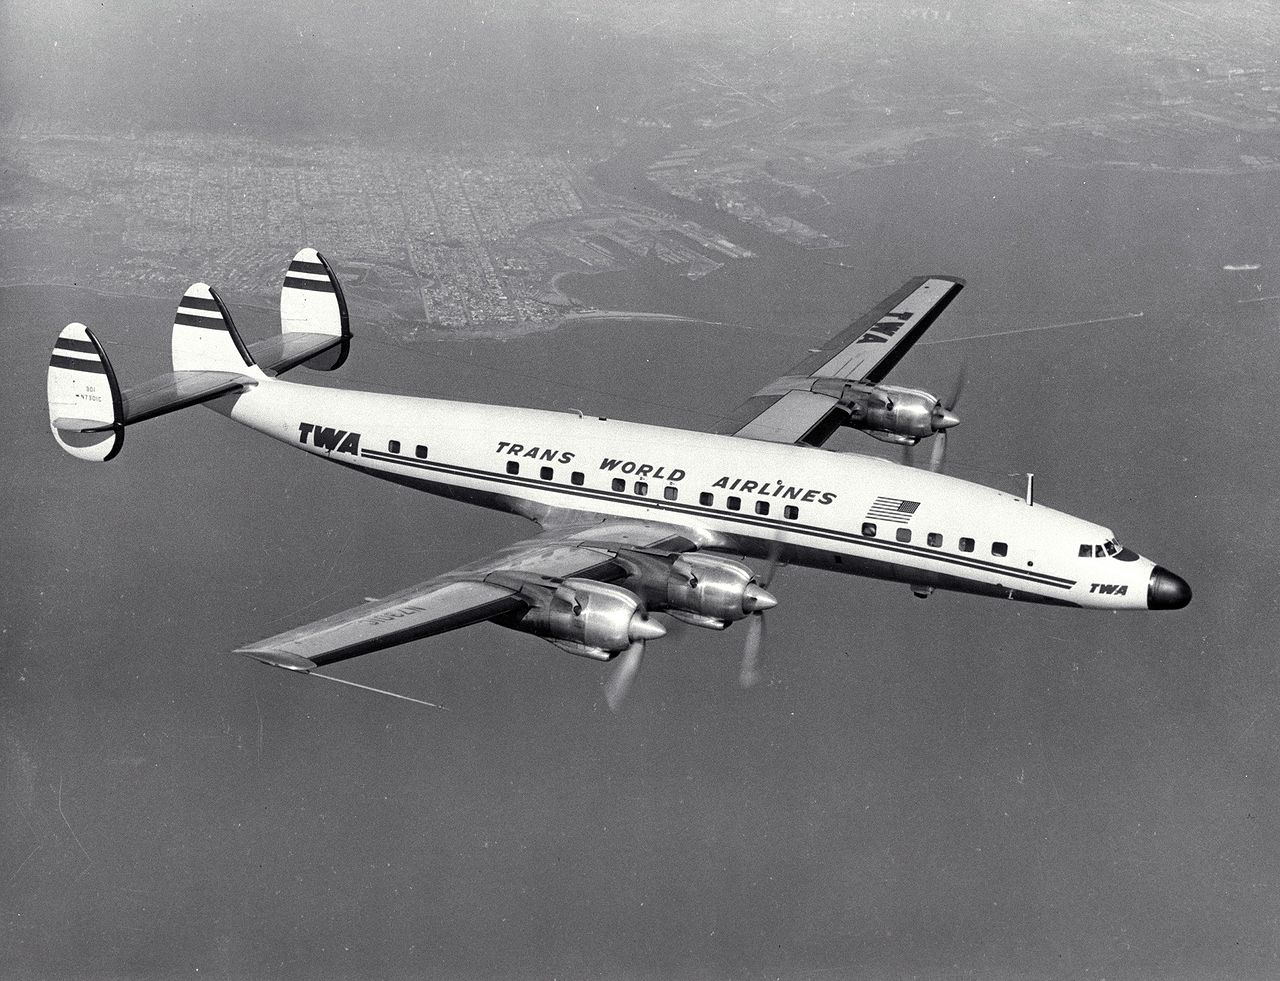 Lockheed C-121 Super Constellation (L-1649 Starliner)